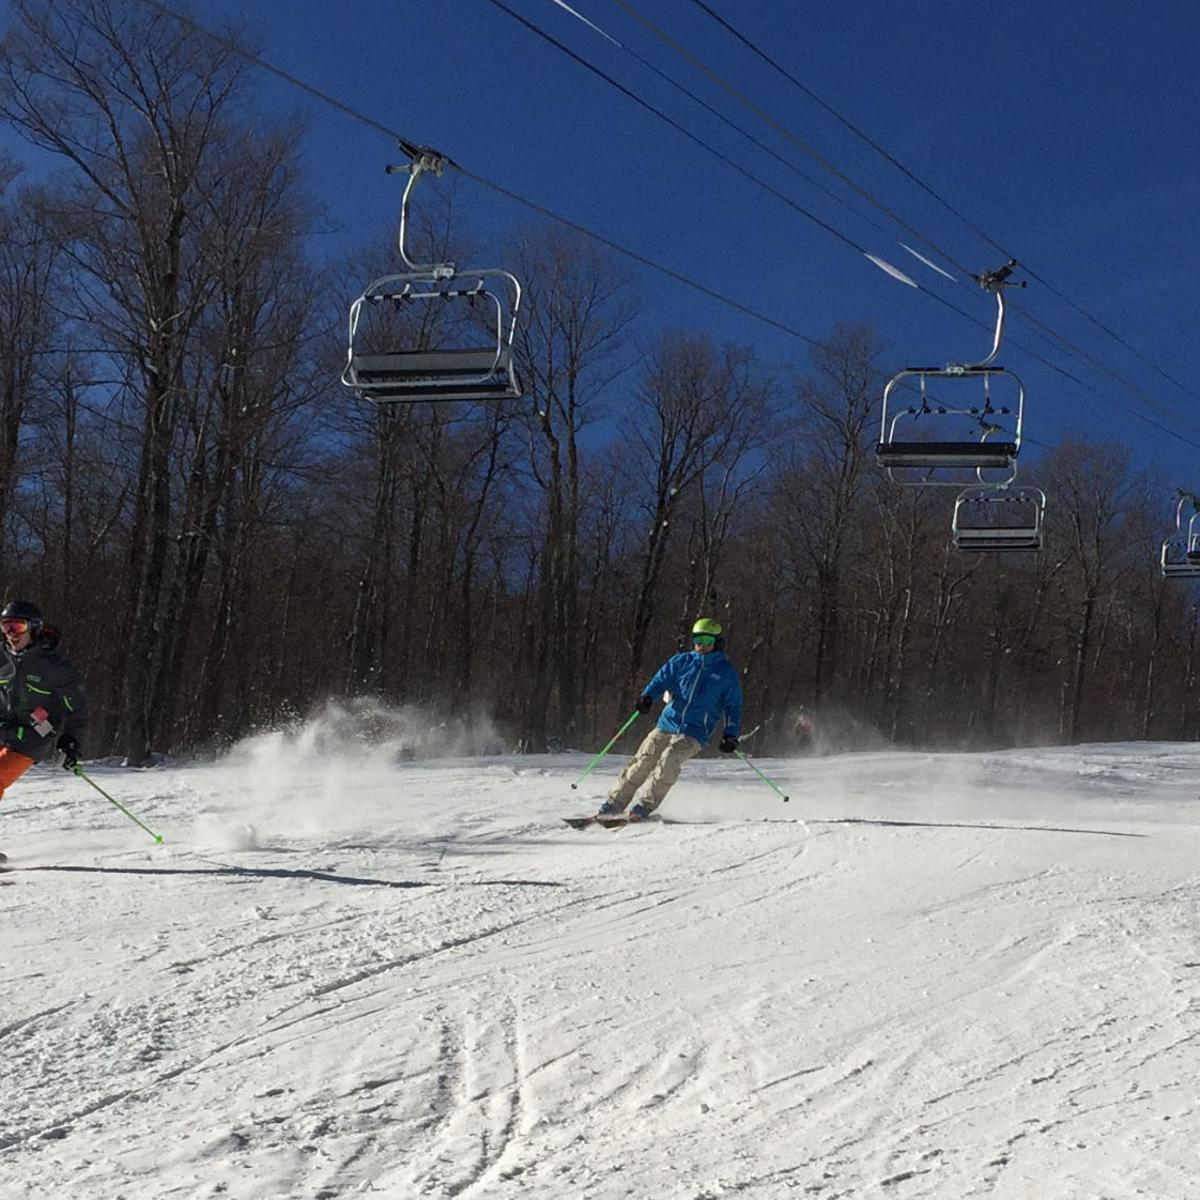 Gore Mountain to host 2019 State Skiing Championships